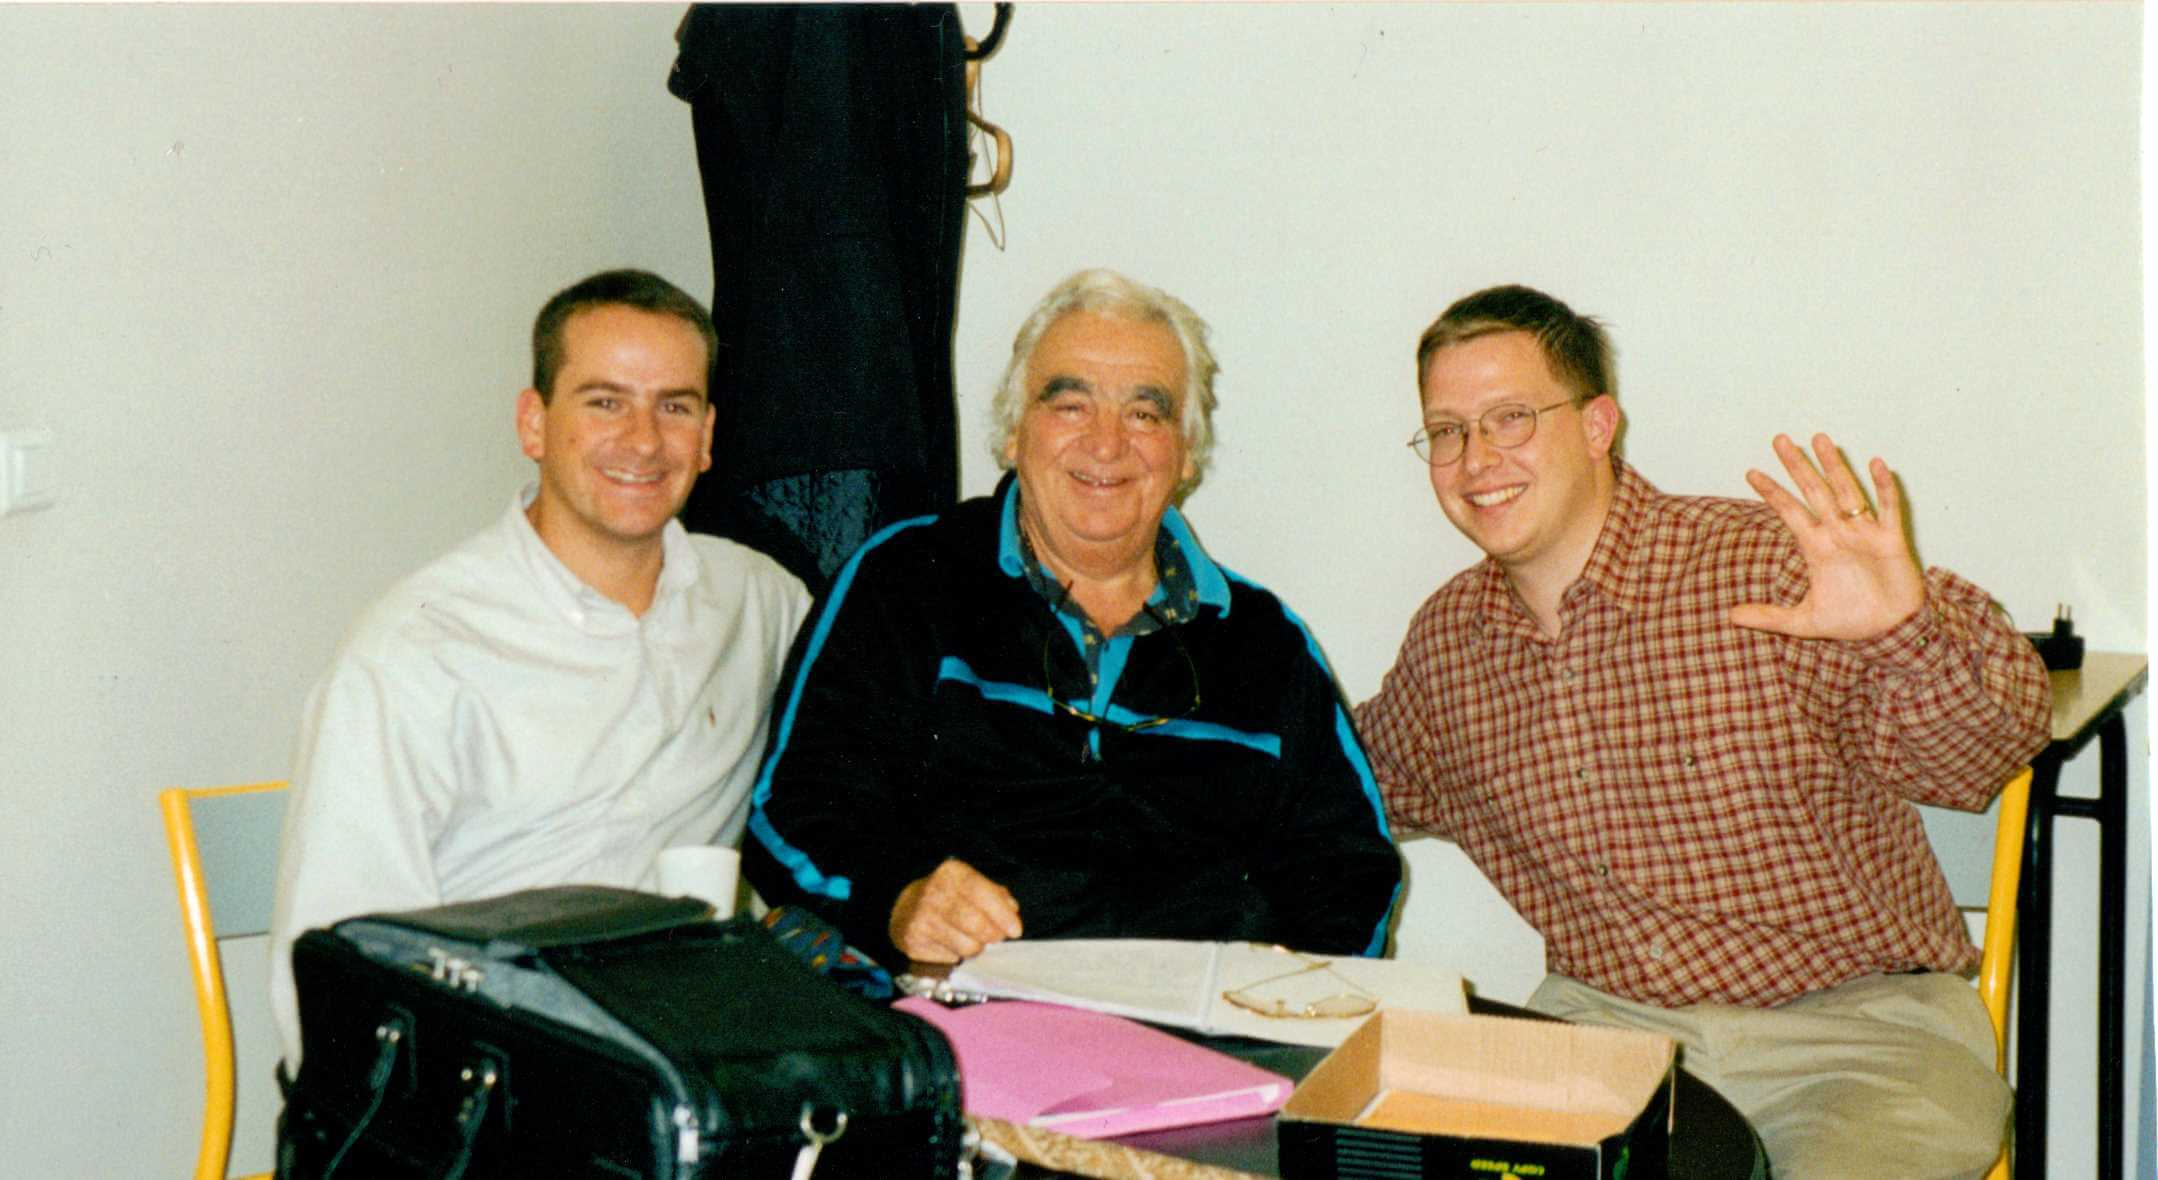 With Maurice Andre and Nicholas Andre in Paris, France 2000